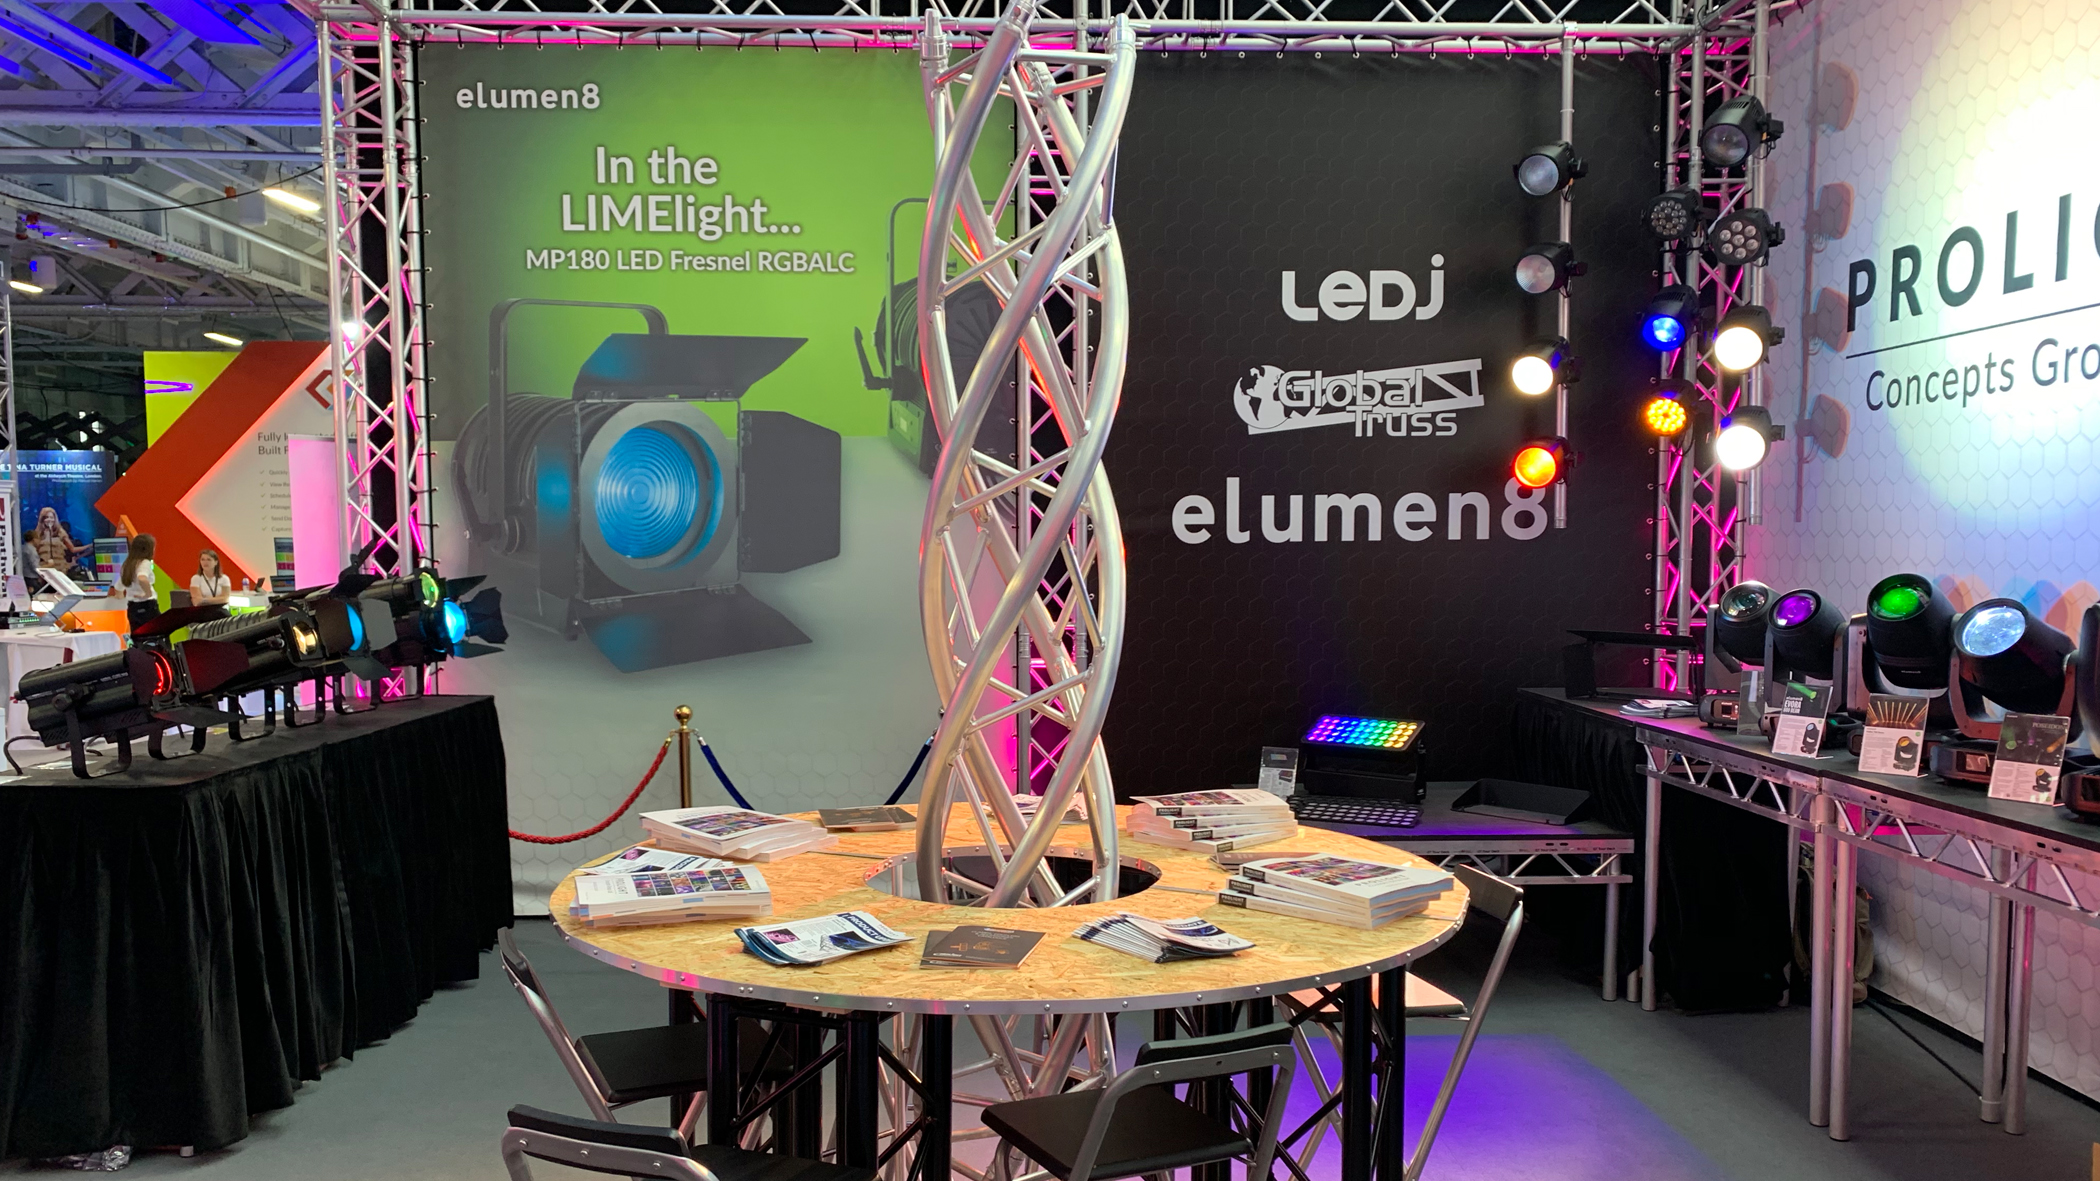 Prolight stand at Plasa